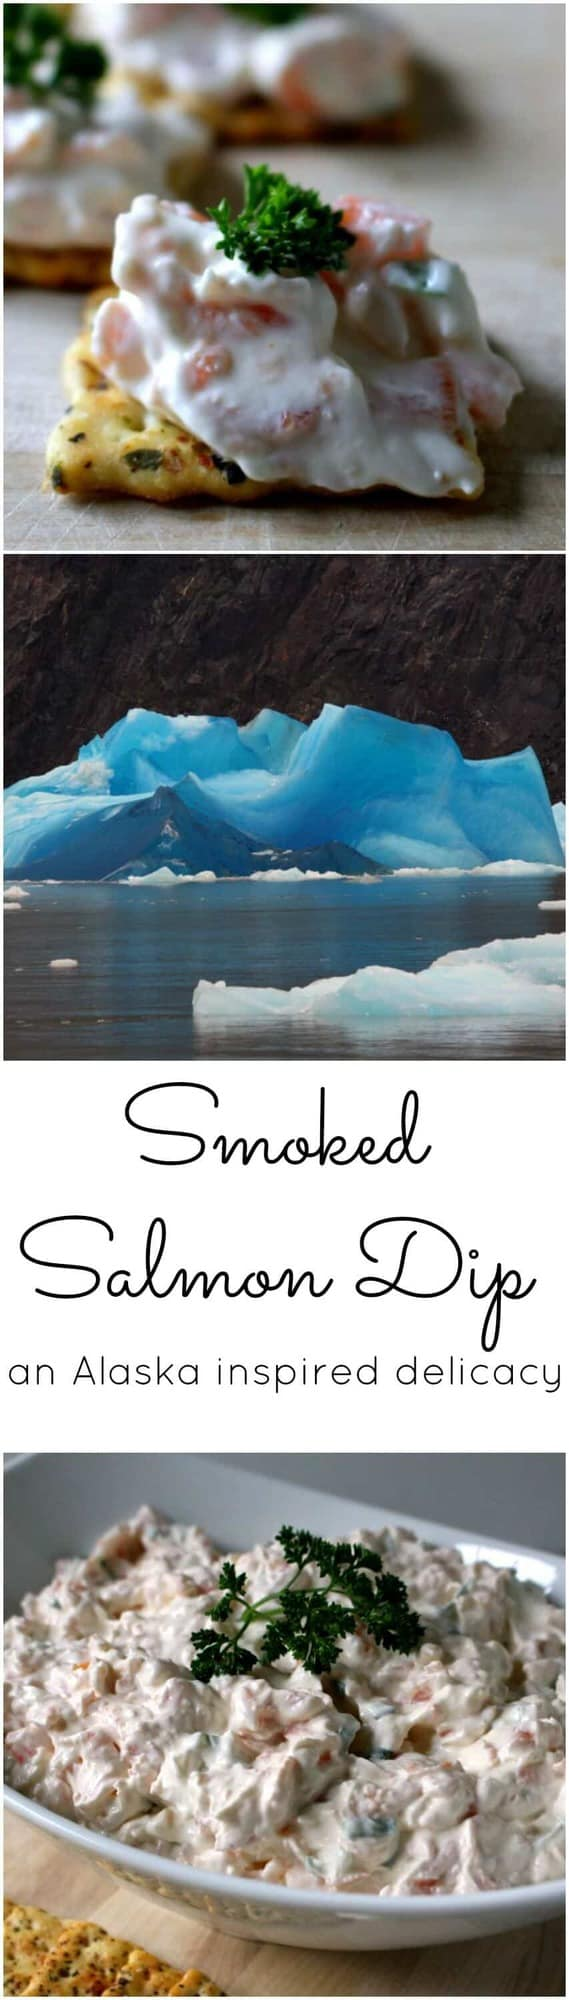 Smoked Salmon Dip - an Alaska inspired delicacy